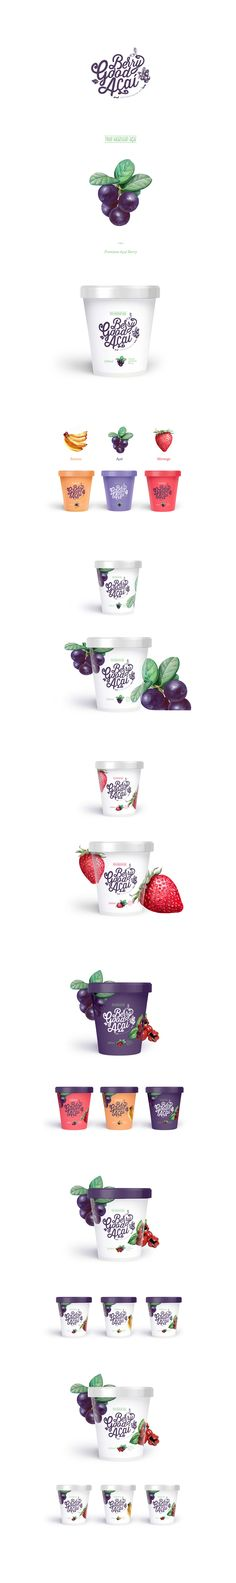 Berry Good Açaí frozen mix by on Brain&Bros DZ. Source: Packaging Design Served. #SFields99 #packaging #design